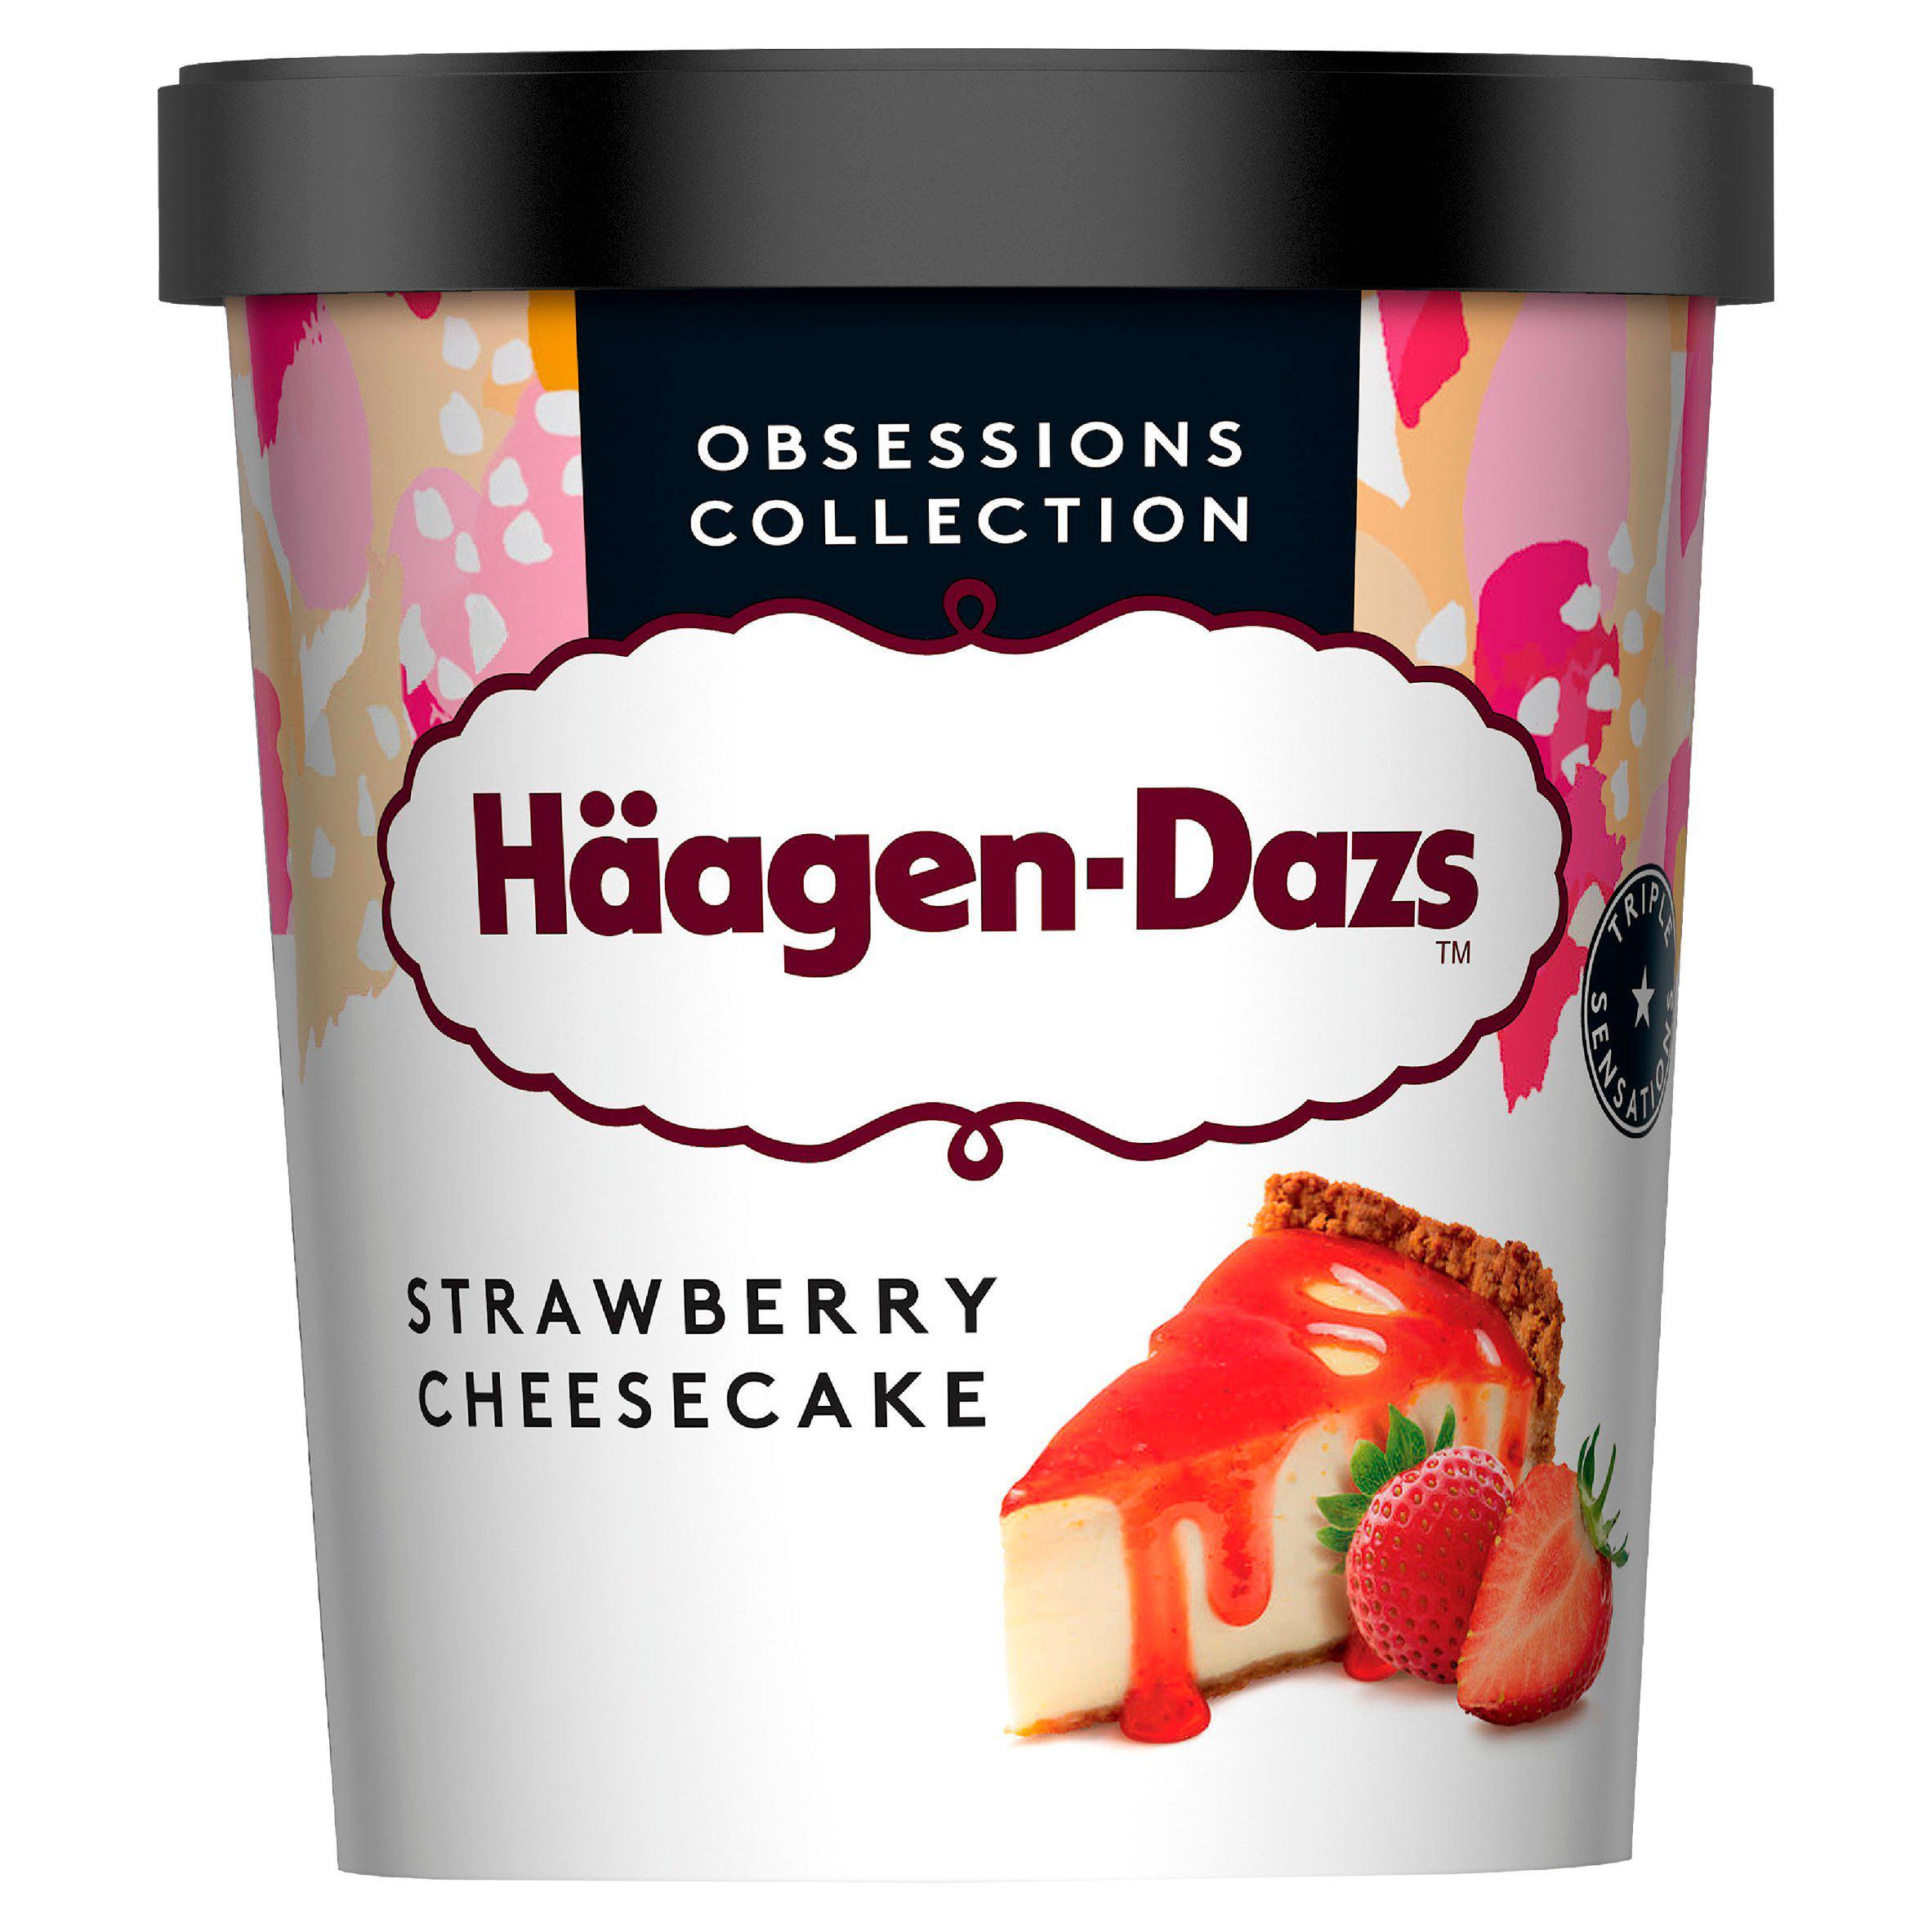 Chill out with a tub of Häagen-Dazs Ice Cream Strawberry Cheesecake for £1.80 less